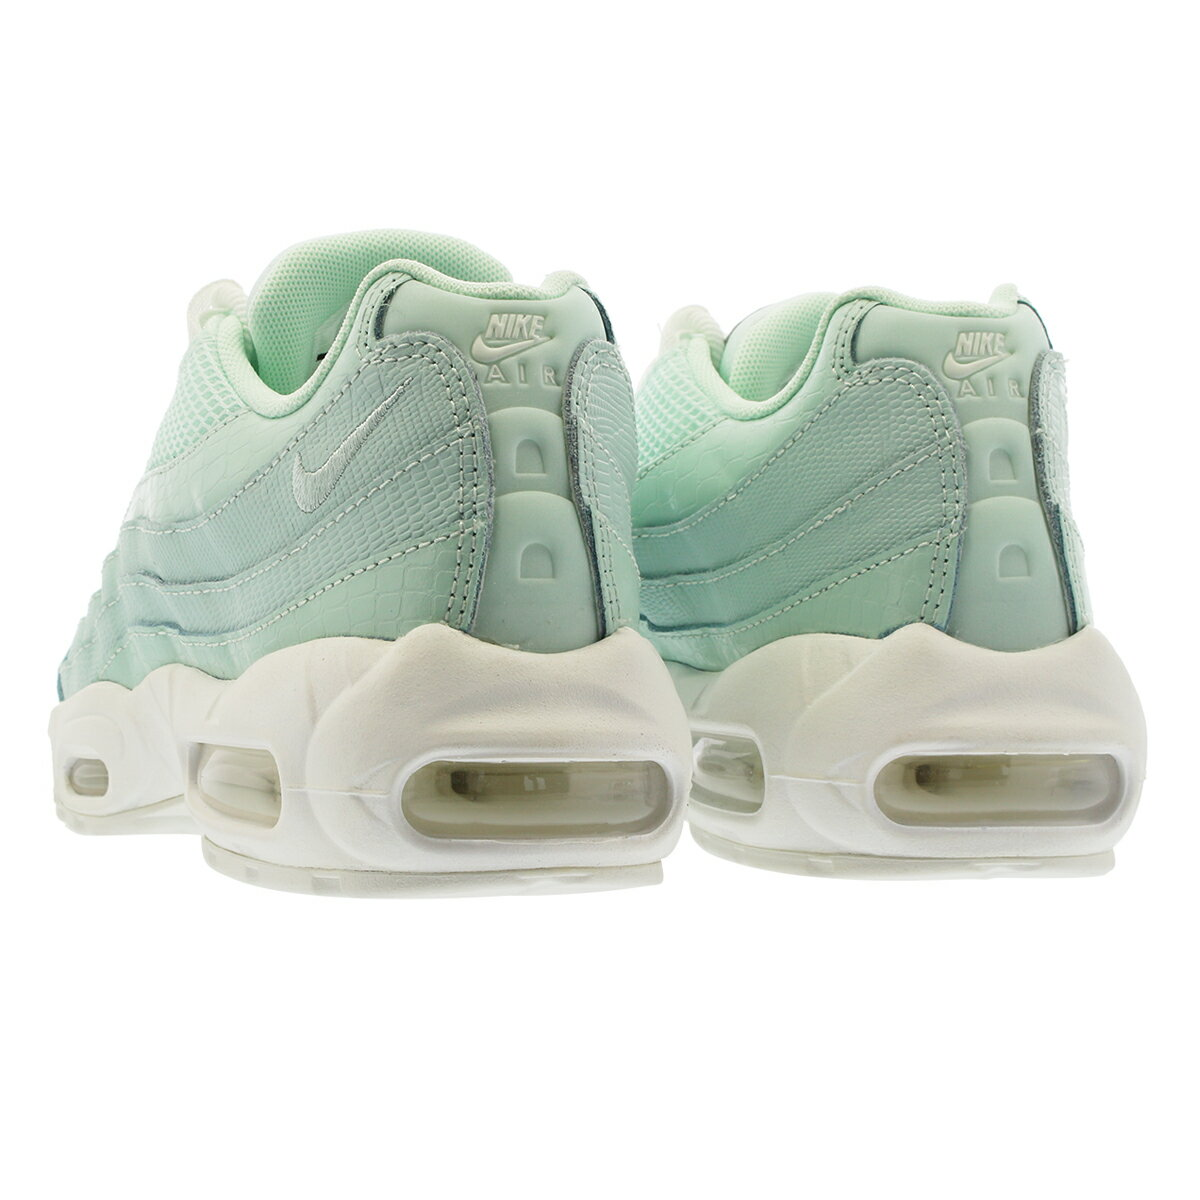 Nike WMNS Air Max 95 PRM BlackSummit White 807443 010